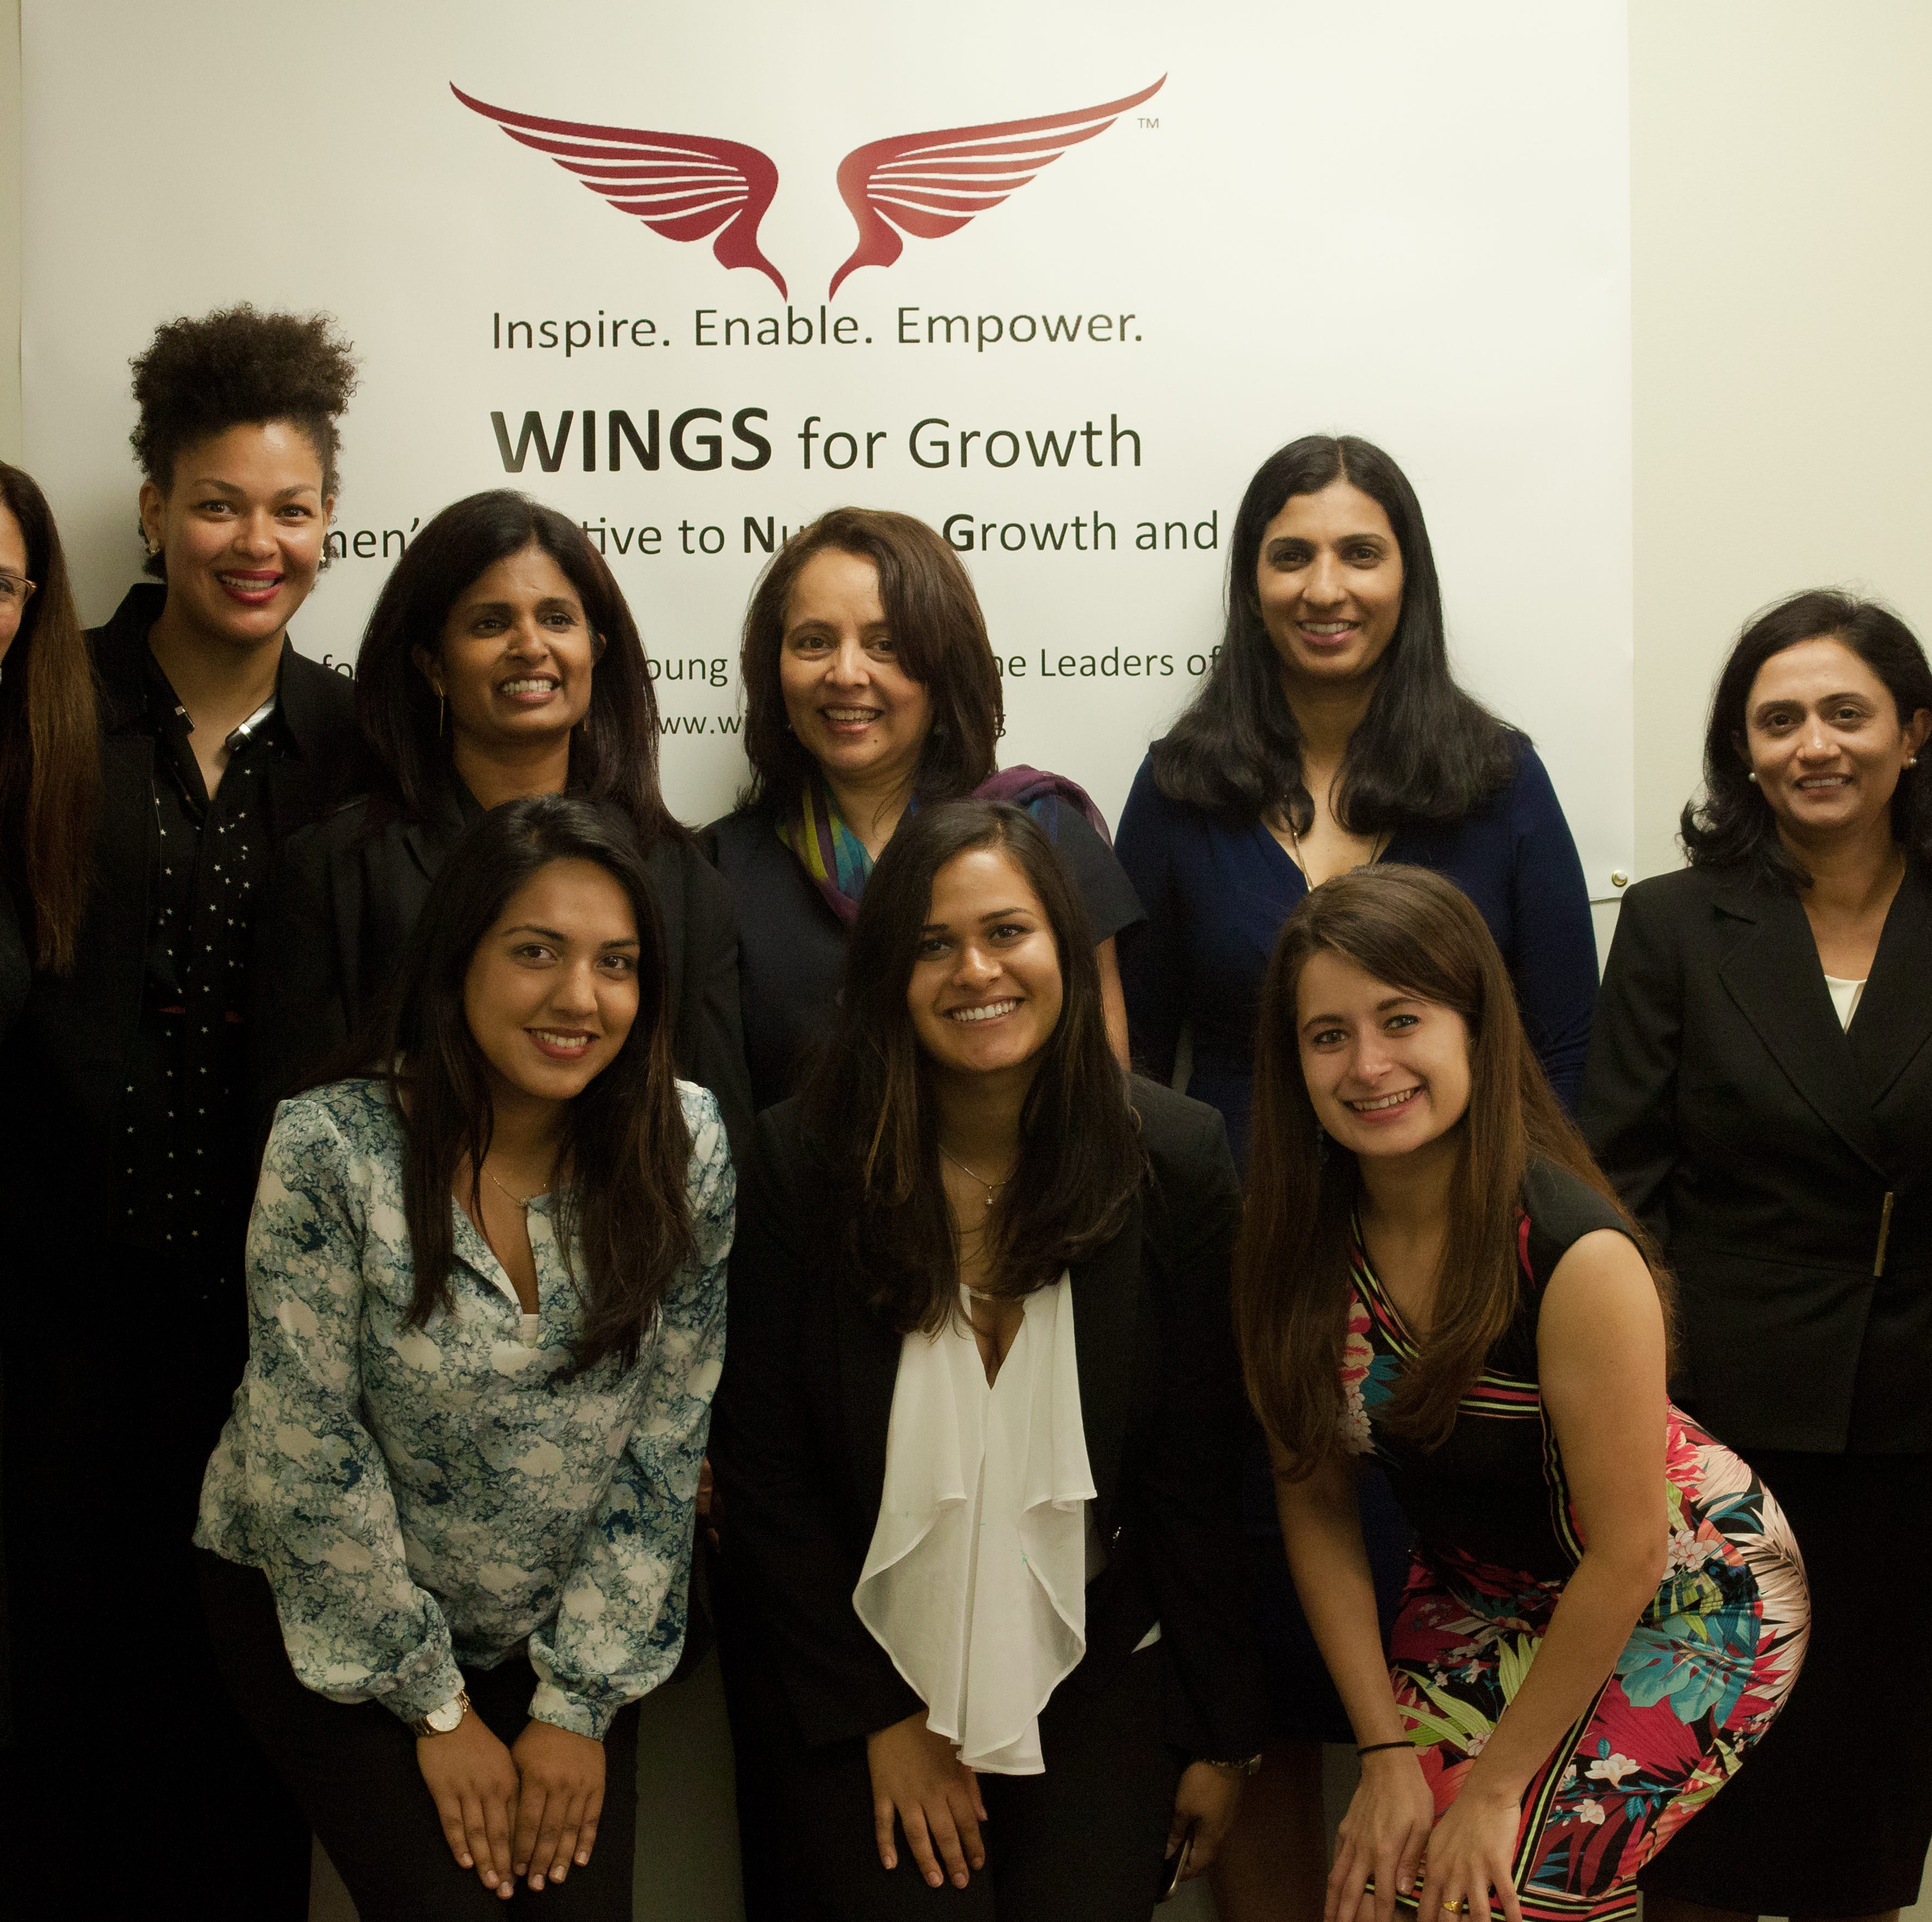 Women's careers take flight through WINGS for Growth